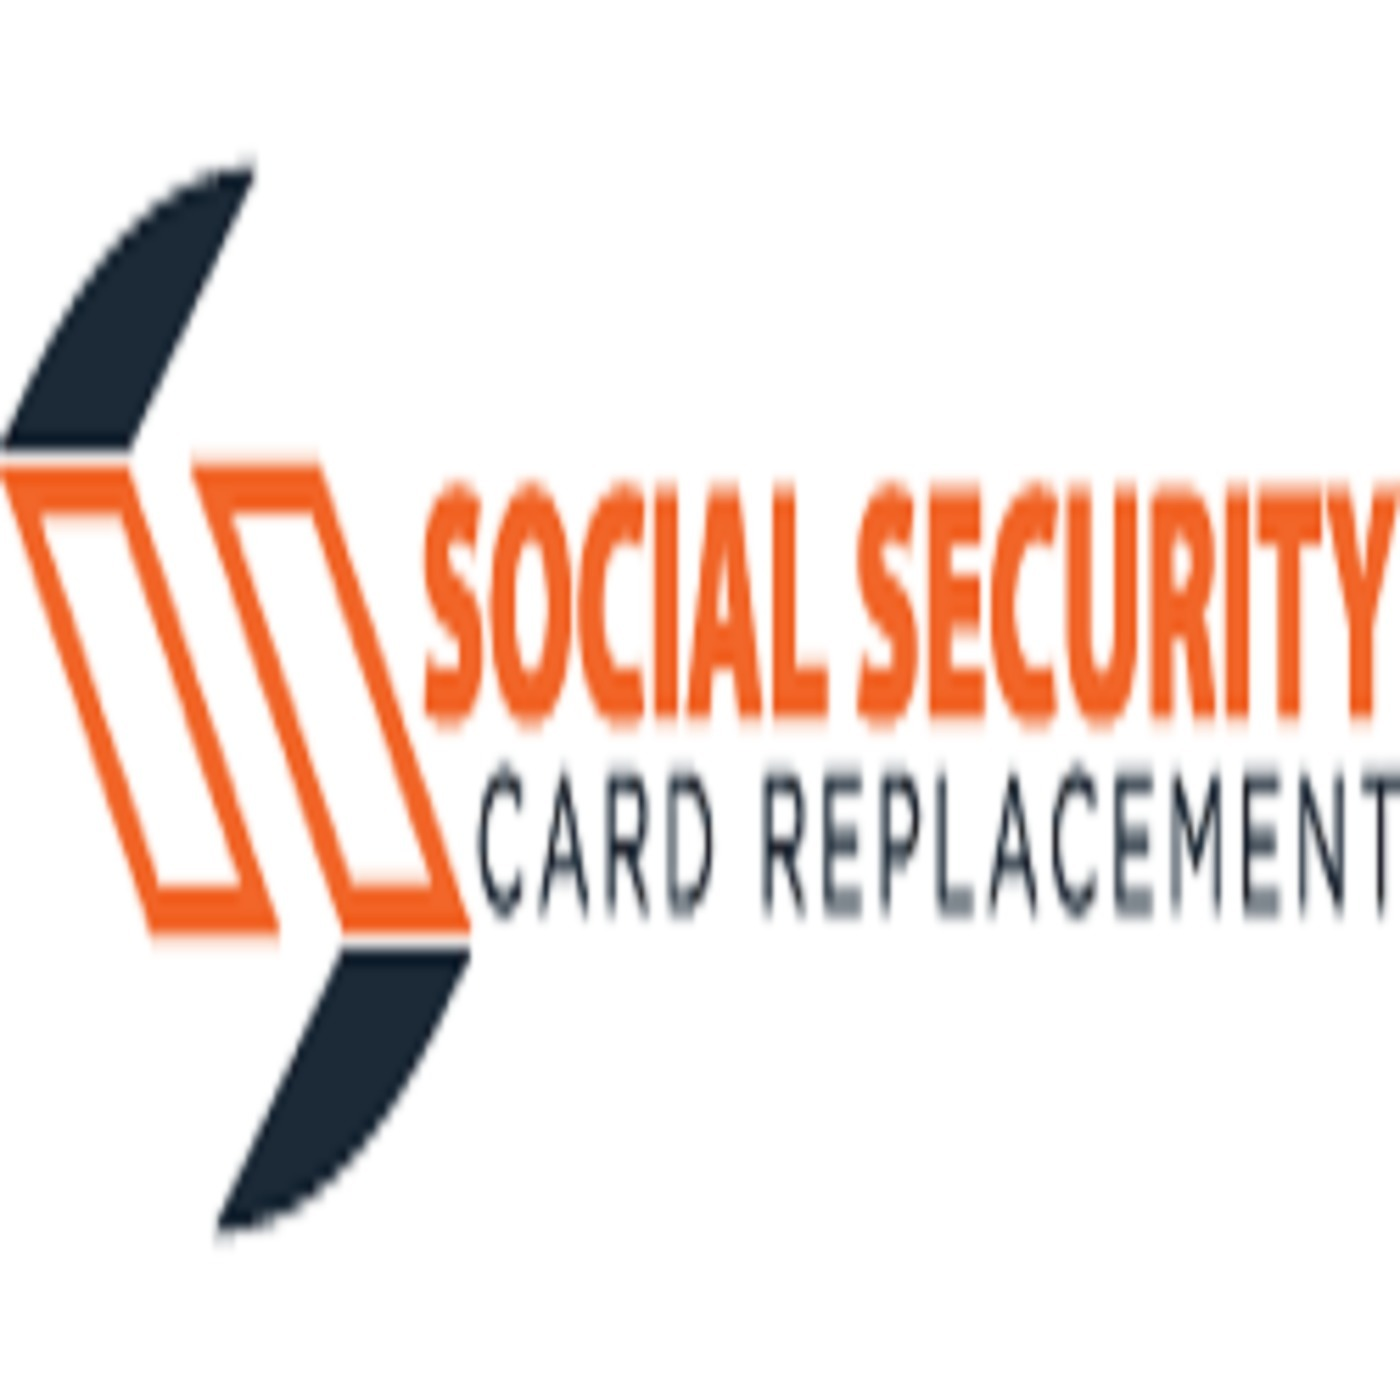 Social Security Card Replacement (@socialsecuritycardreplacement) Cover Image